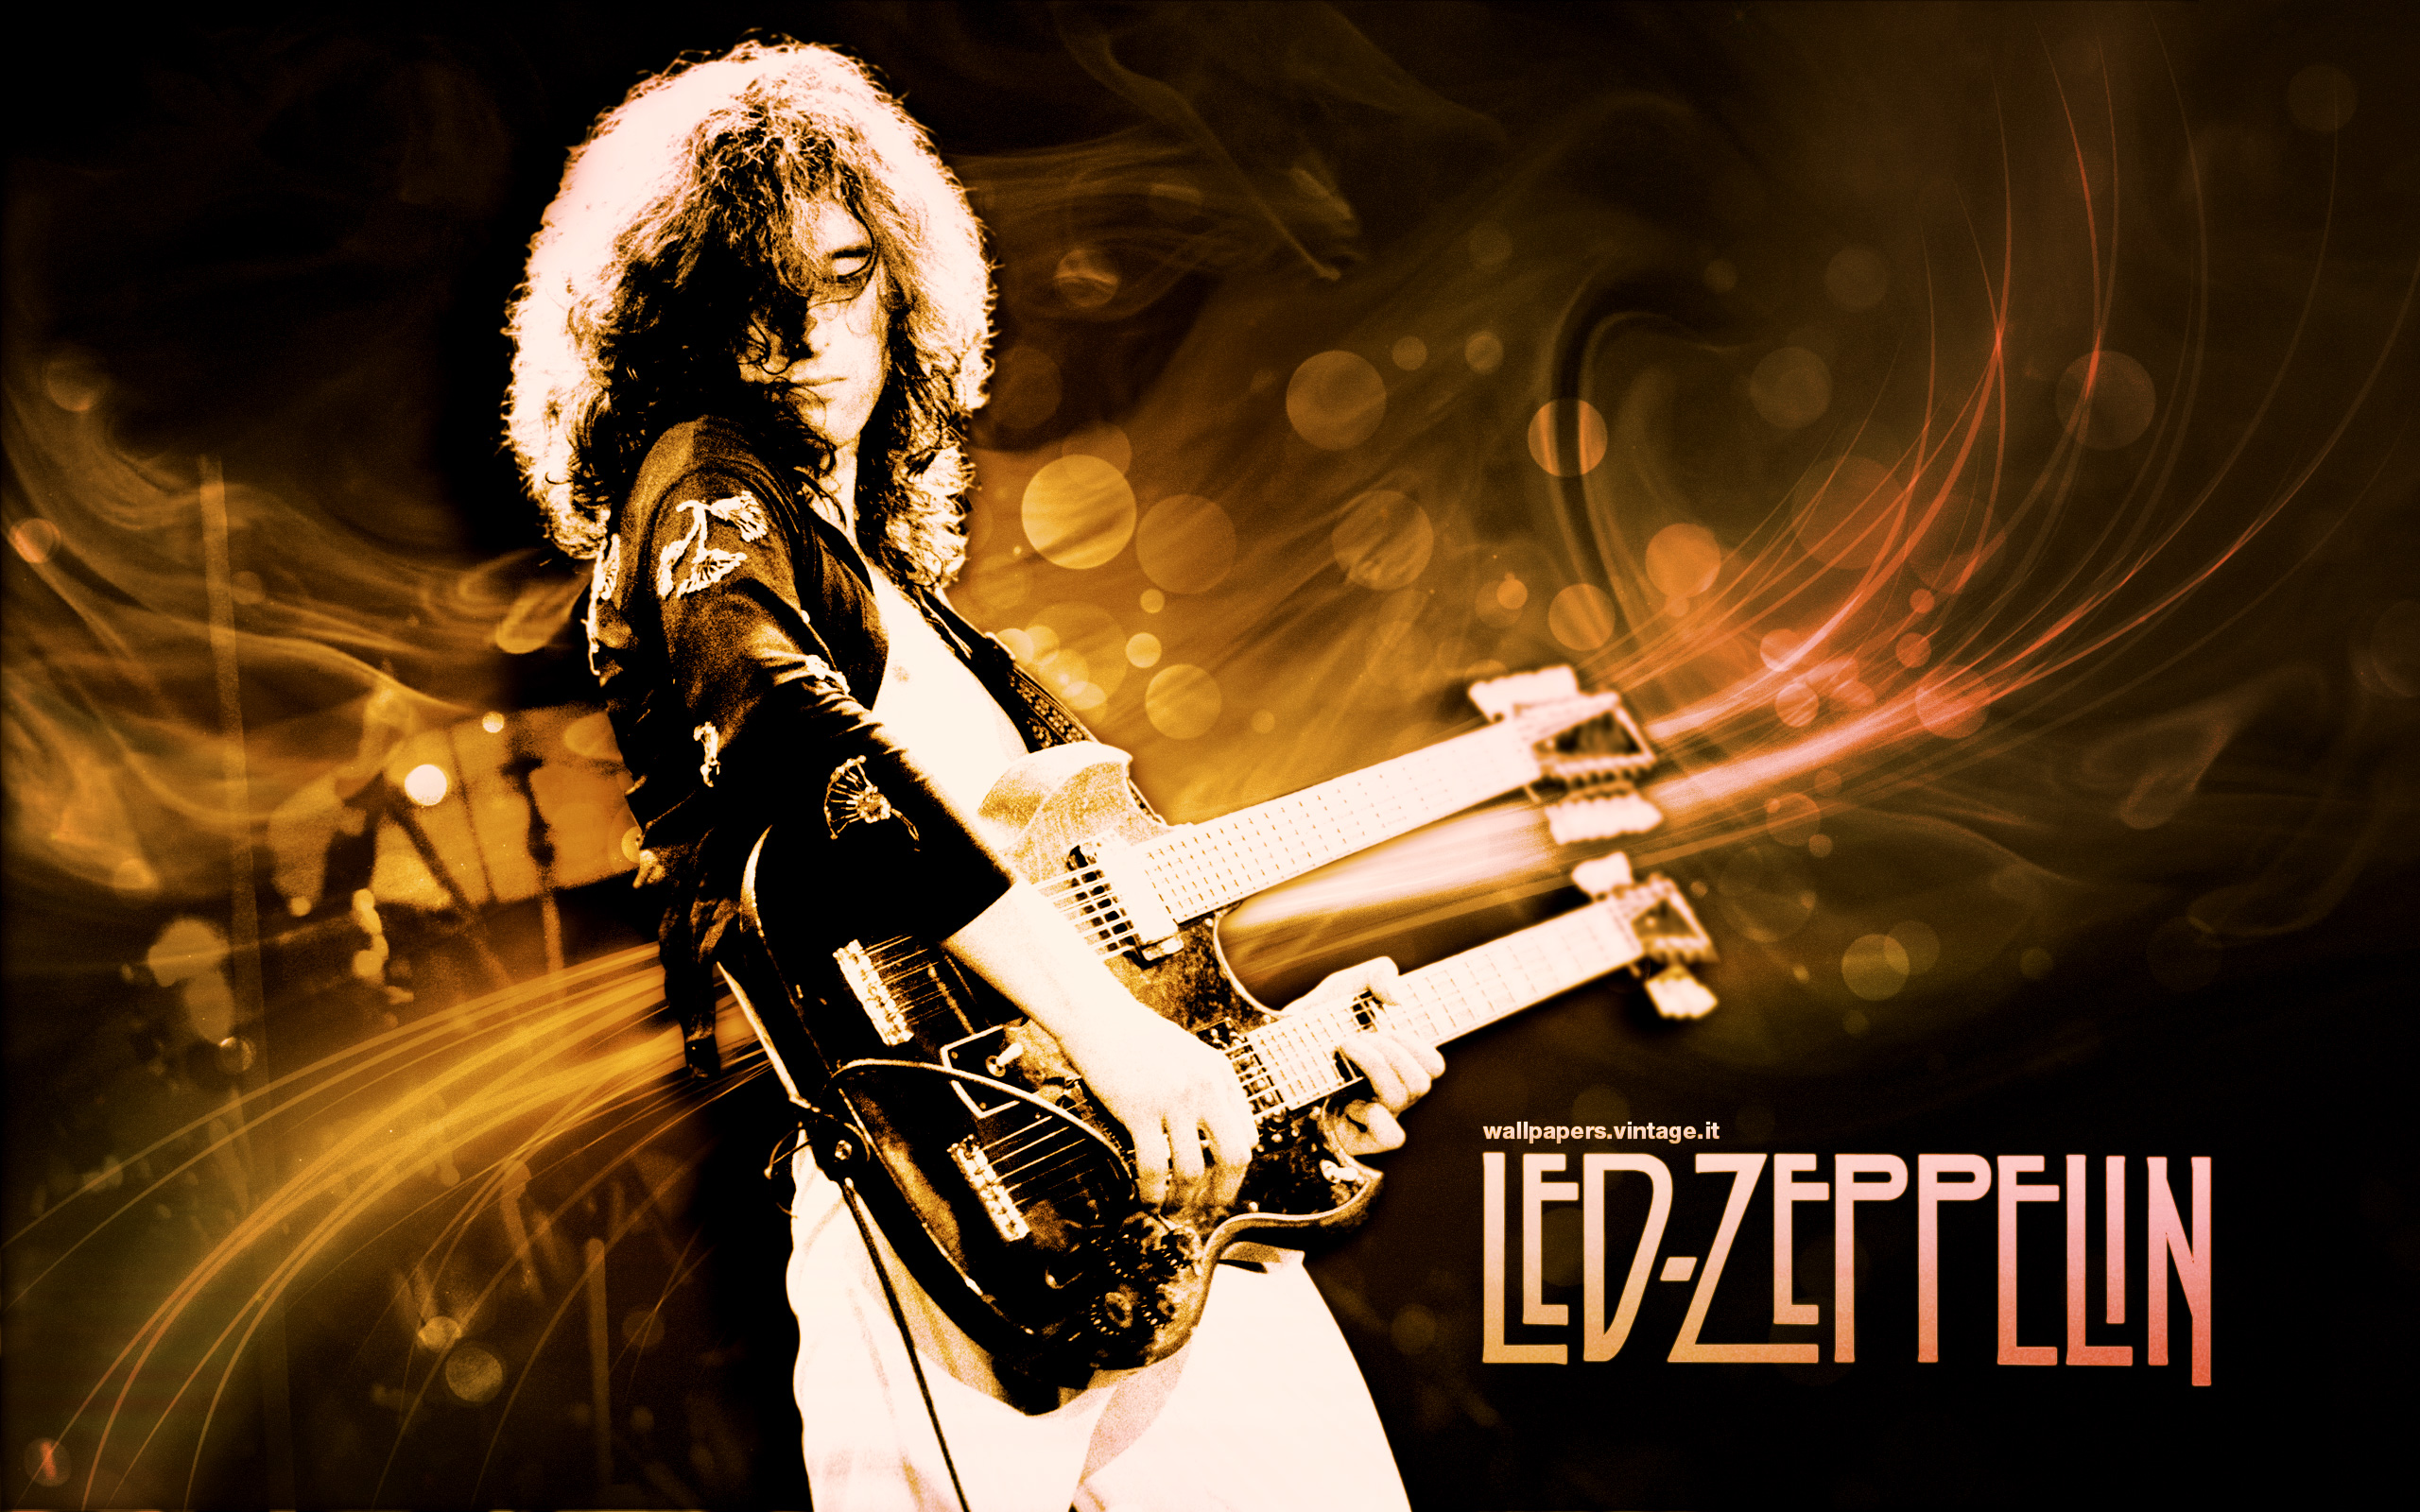 Led Zeppelin wallpaper - Free Desktop HD iPad iPhone ...